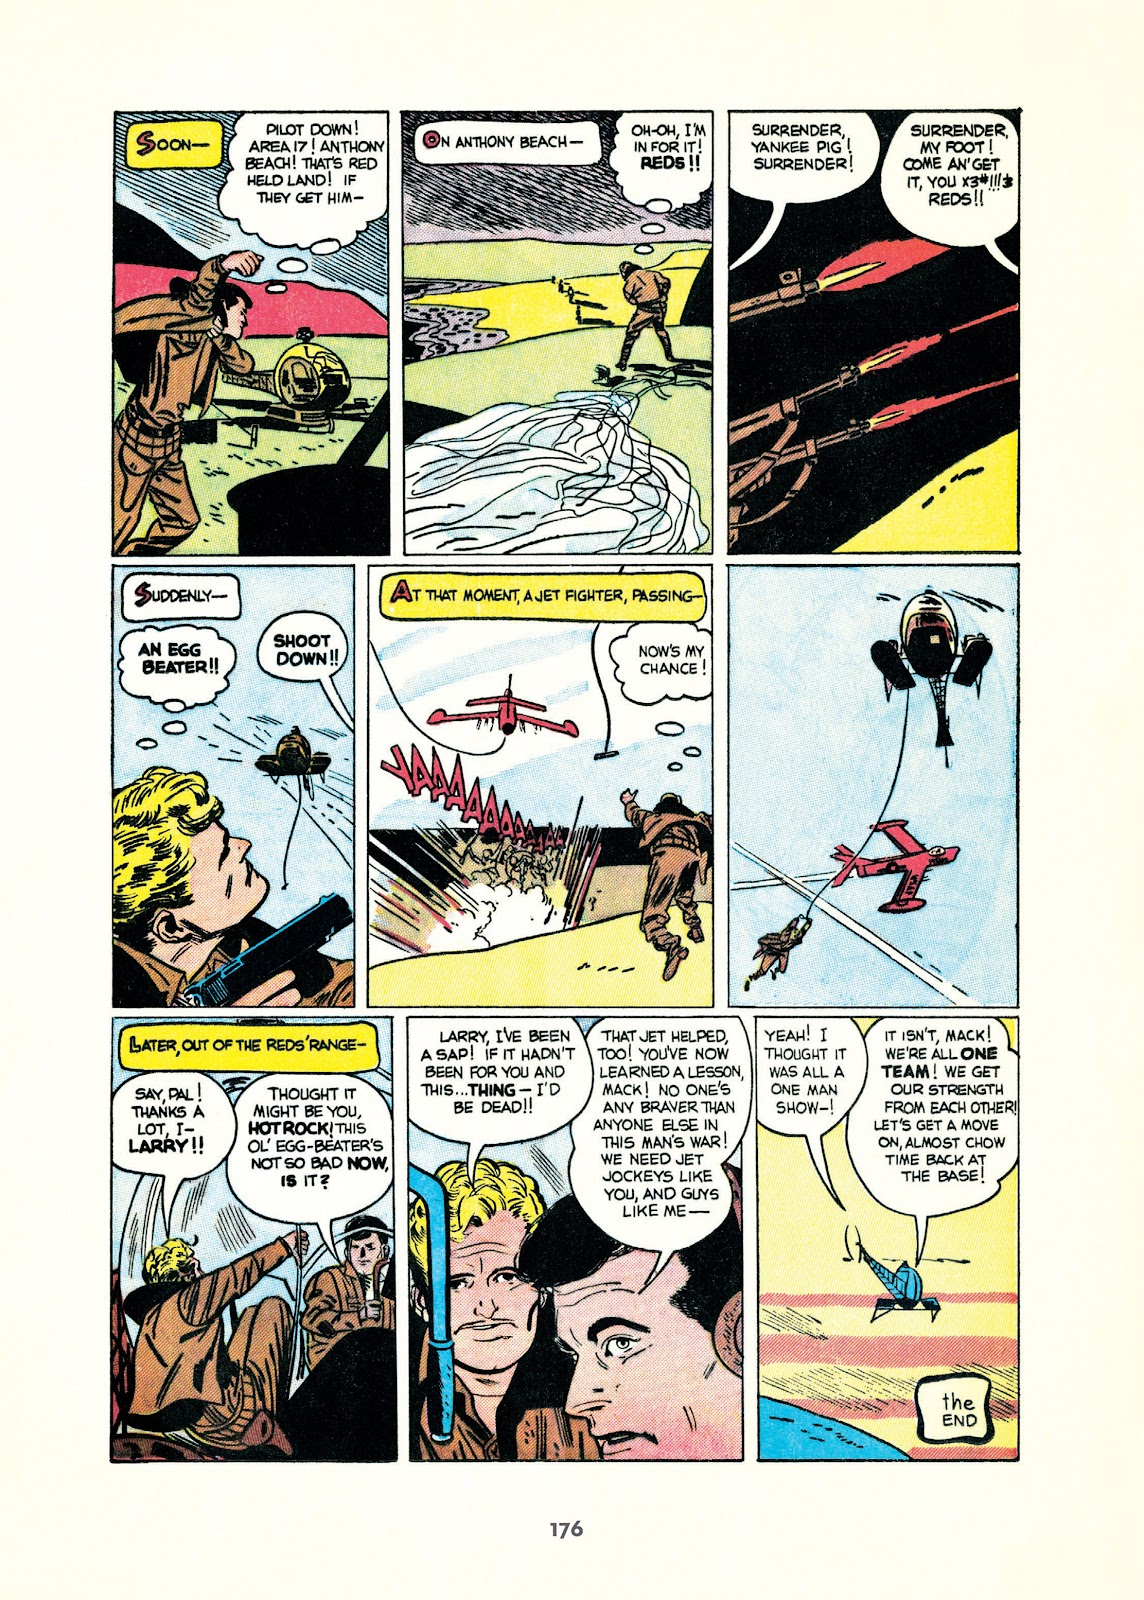 Read online Setting the Standard: Comics by Alex Toth 1952-1954 comic -  Issue # TPB (Part 2) - 77